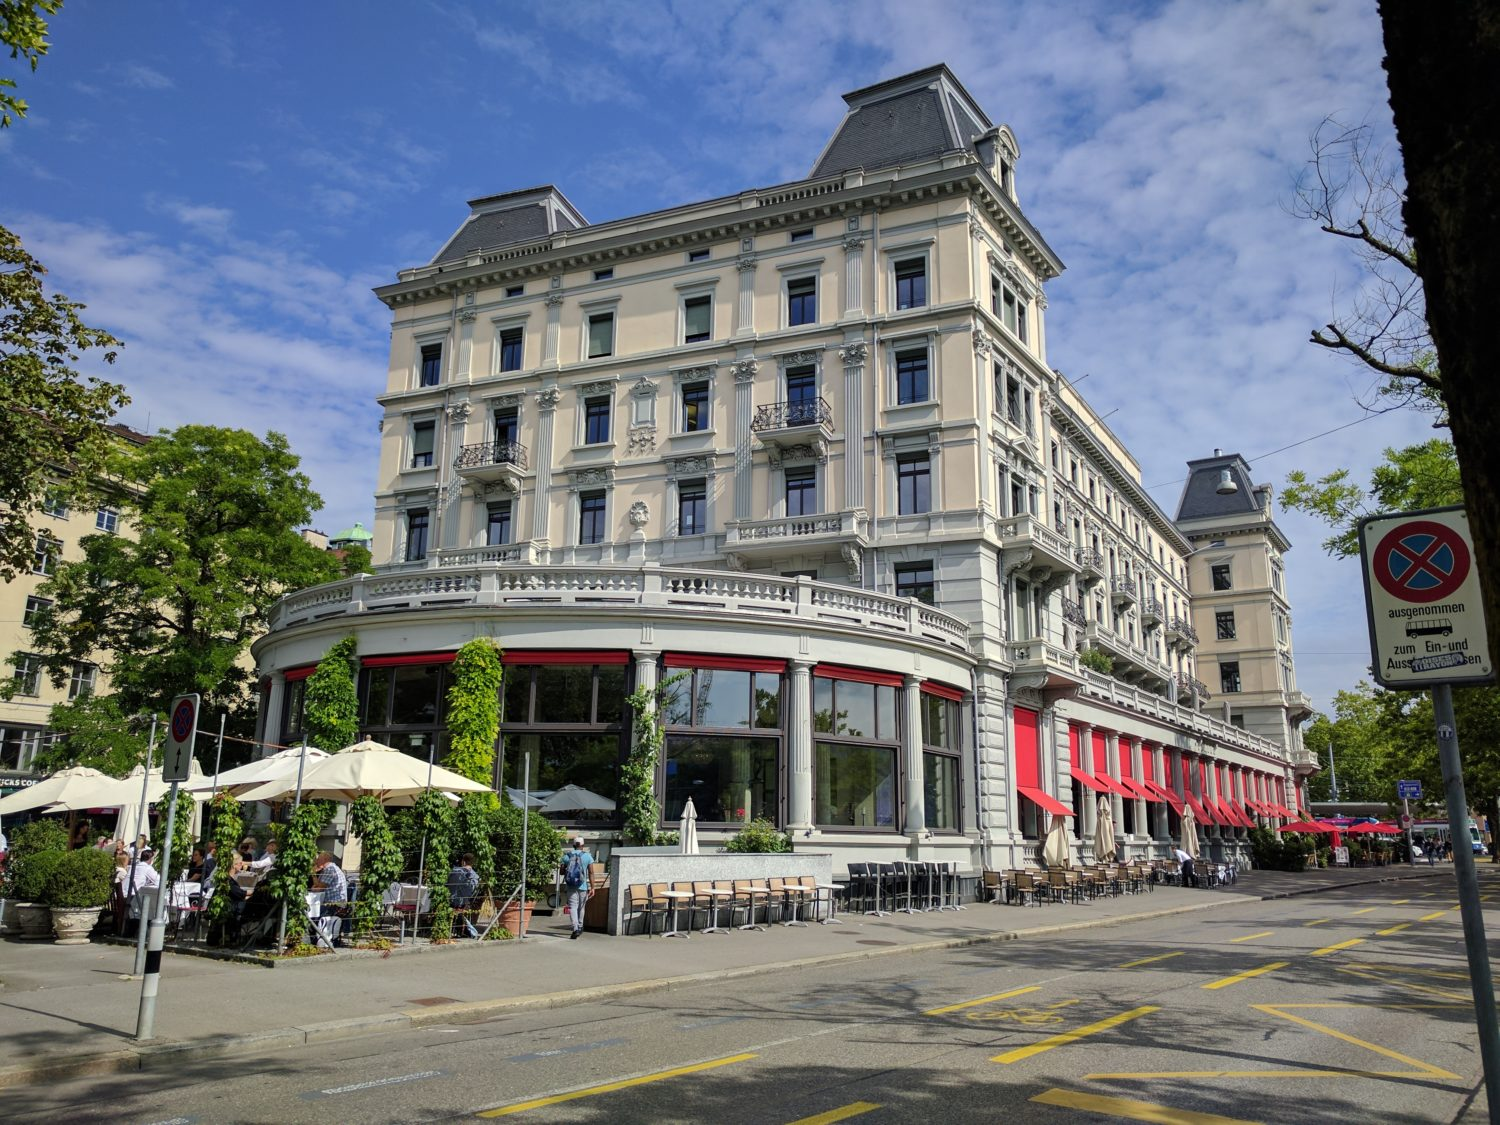 Welcome to zurich one of the most expensive cities in the world well i wouldnt recommend going to shops anyway since the prices are enormous for example you get french fries for 750 francs 8 and a cesar chicken solutioingenieria Choice Image